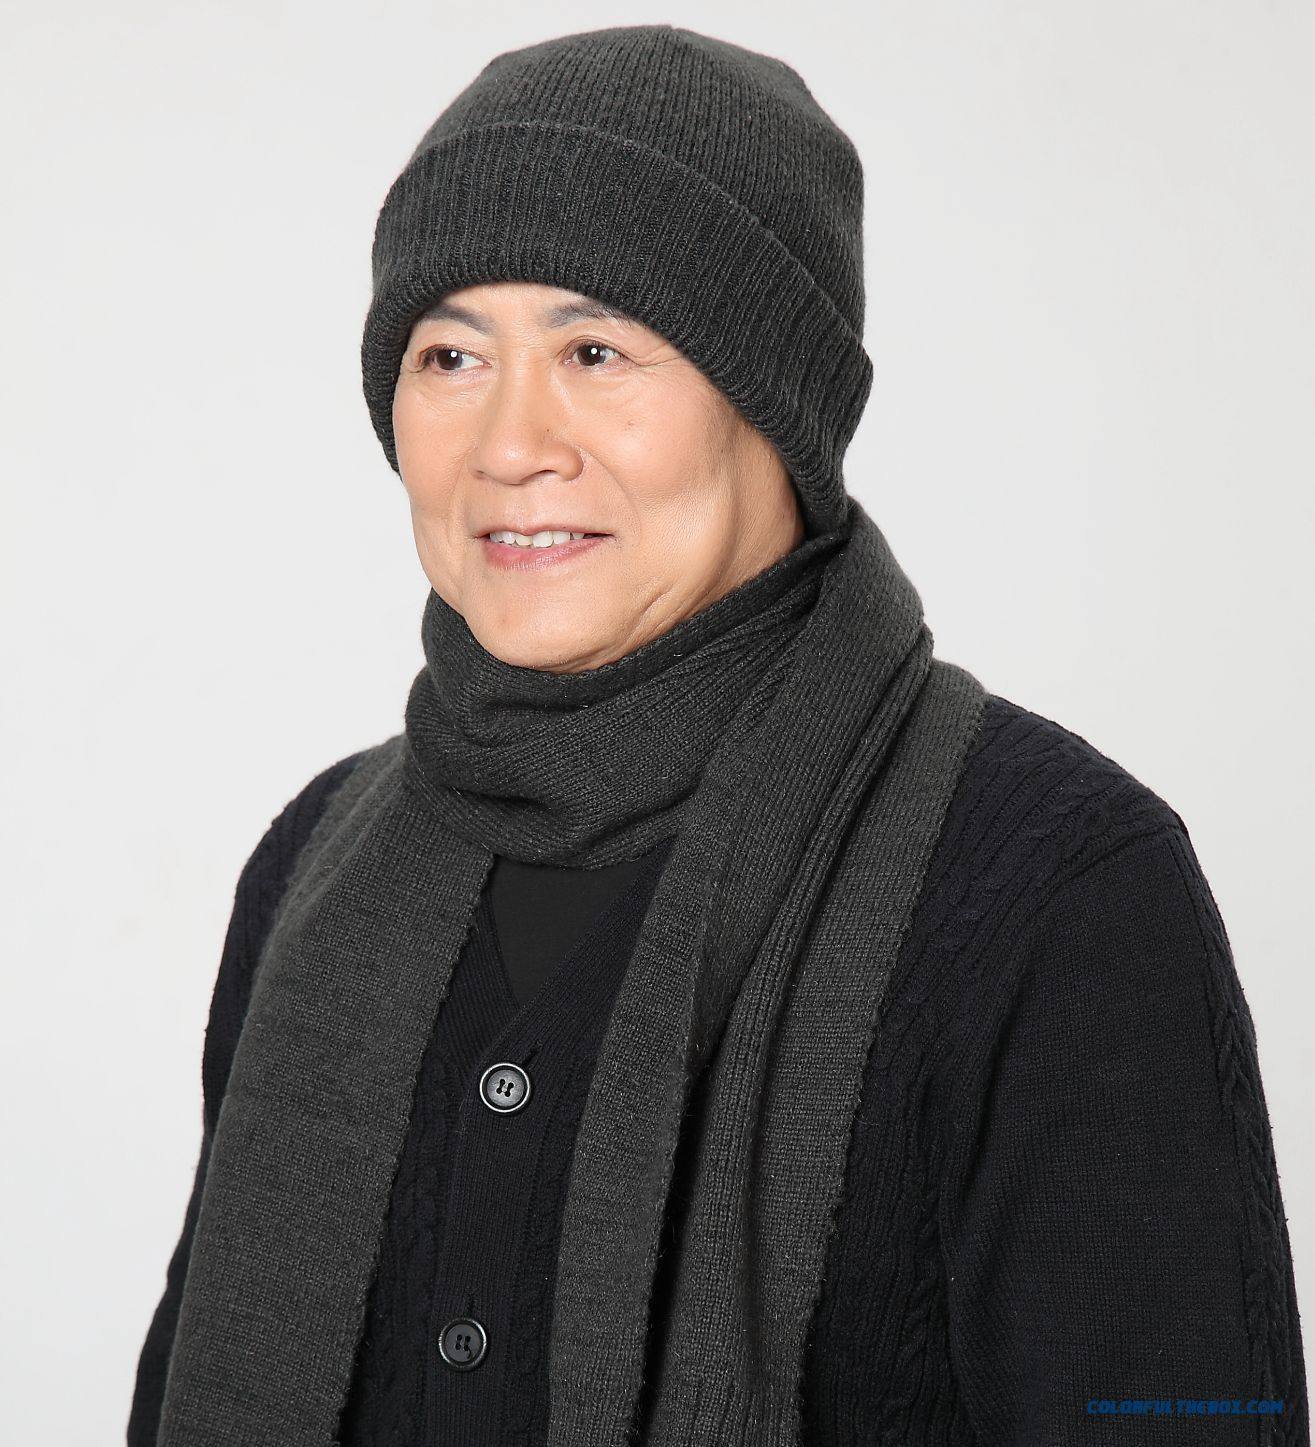 Men And Women Two Piece Of Rabbit Wool Woolen Hat With Protect Ear Function And Same Style Scarf